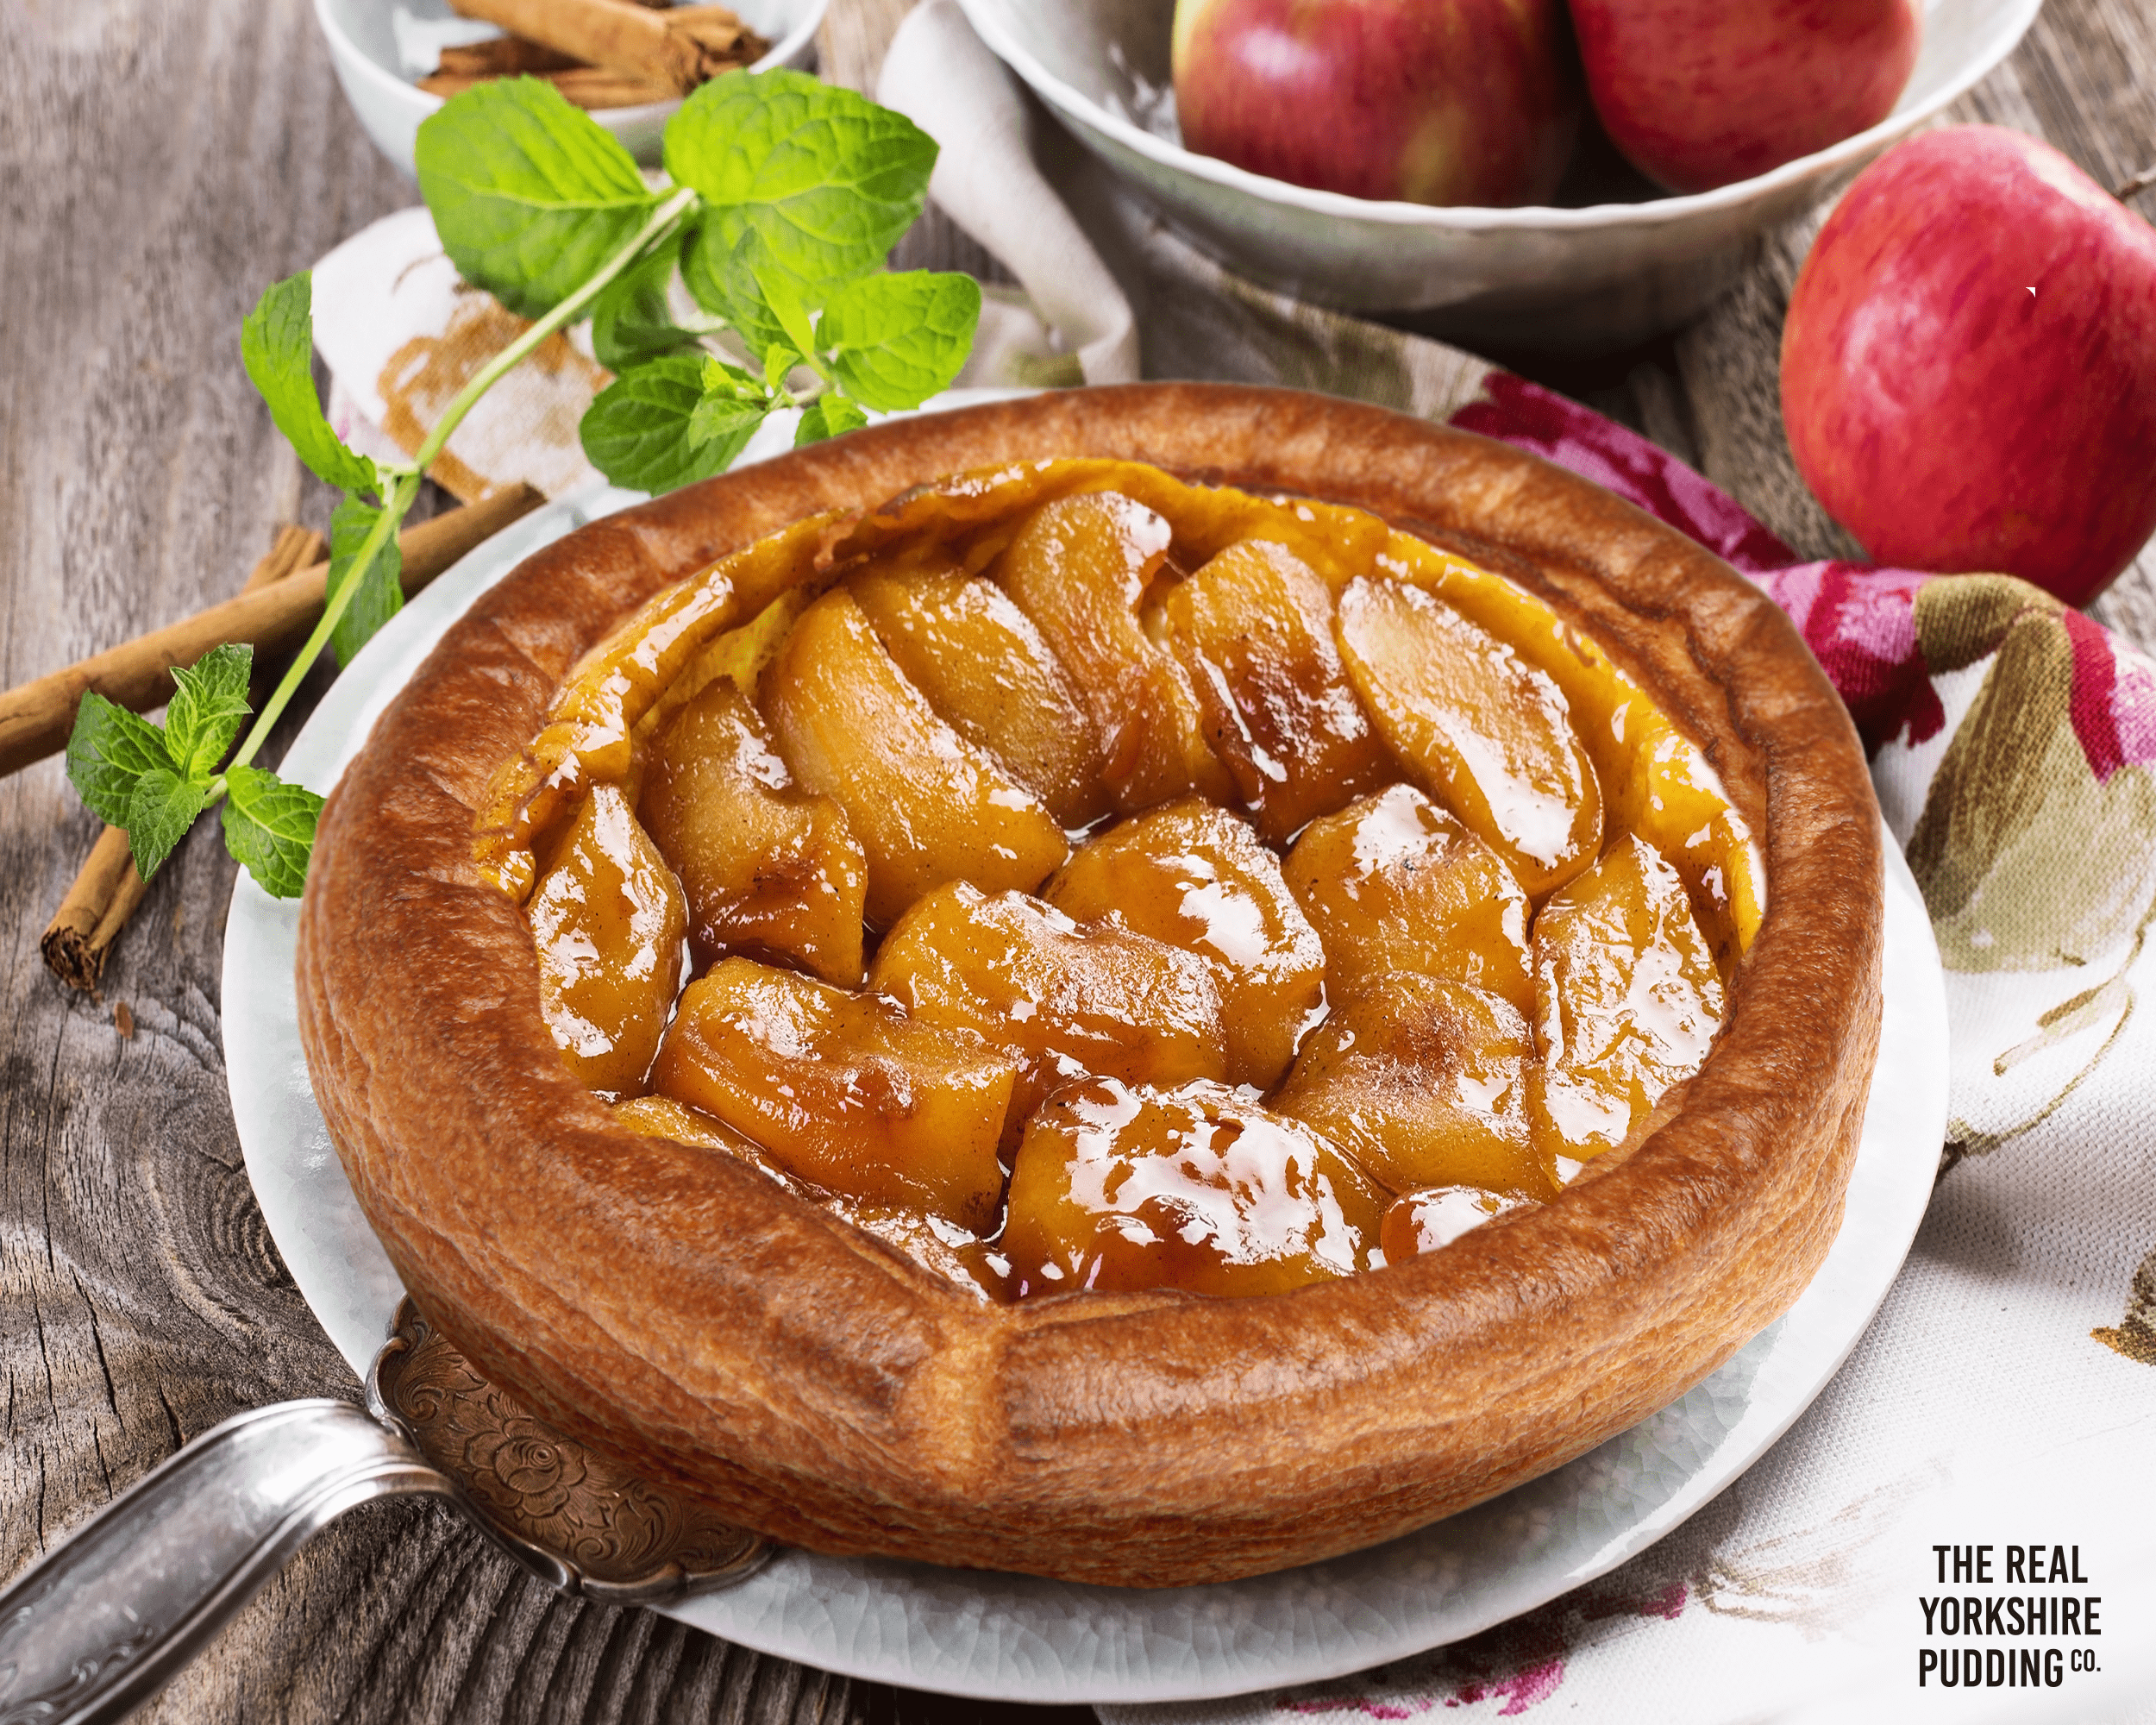 Yorkshire Pudding with caramel apples